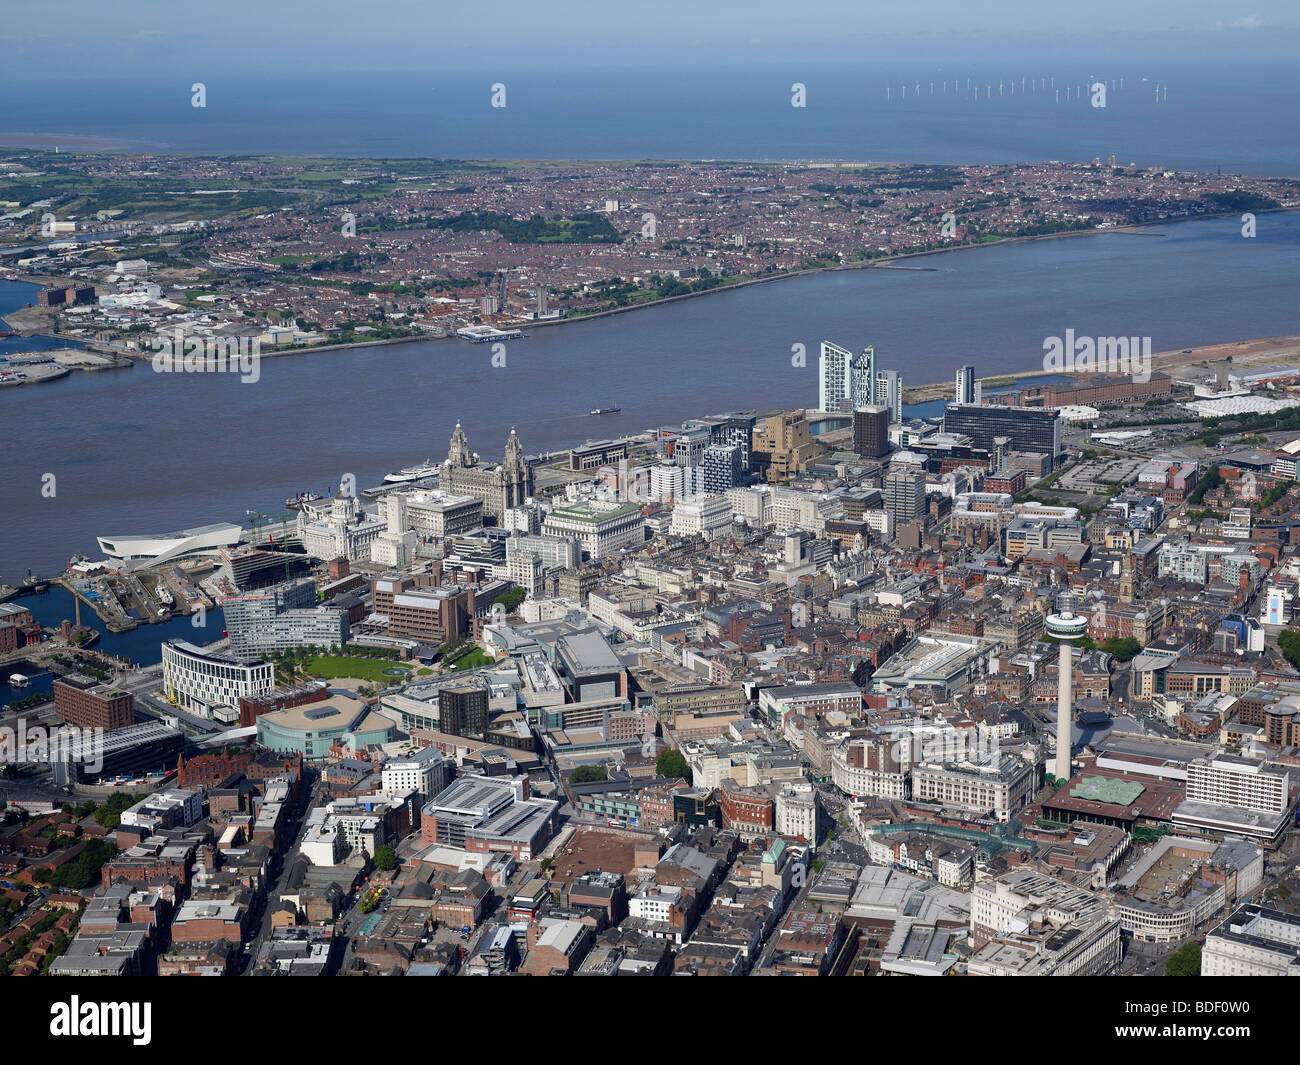 Aerial view of Liverpool, North West England, Summer 2009, looking across the River Mersey with the Irish sea behind - Stock Image